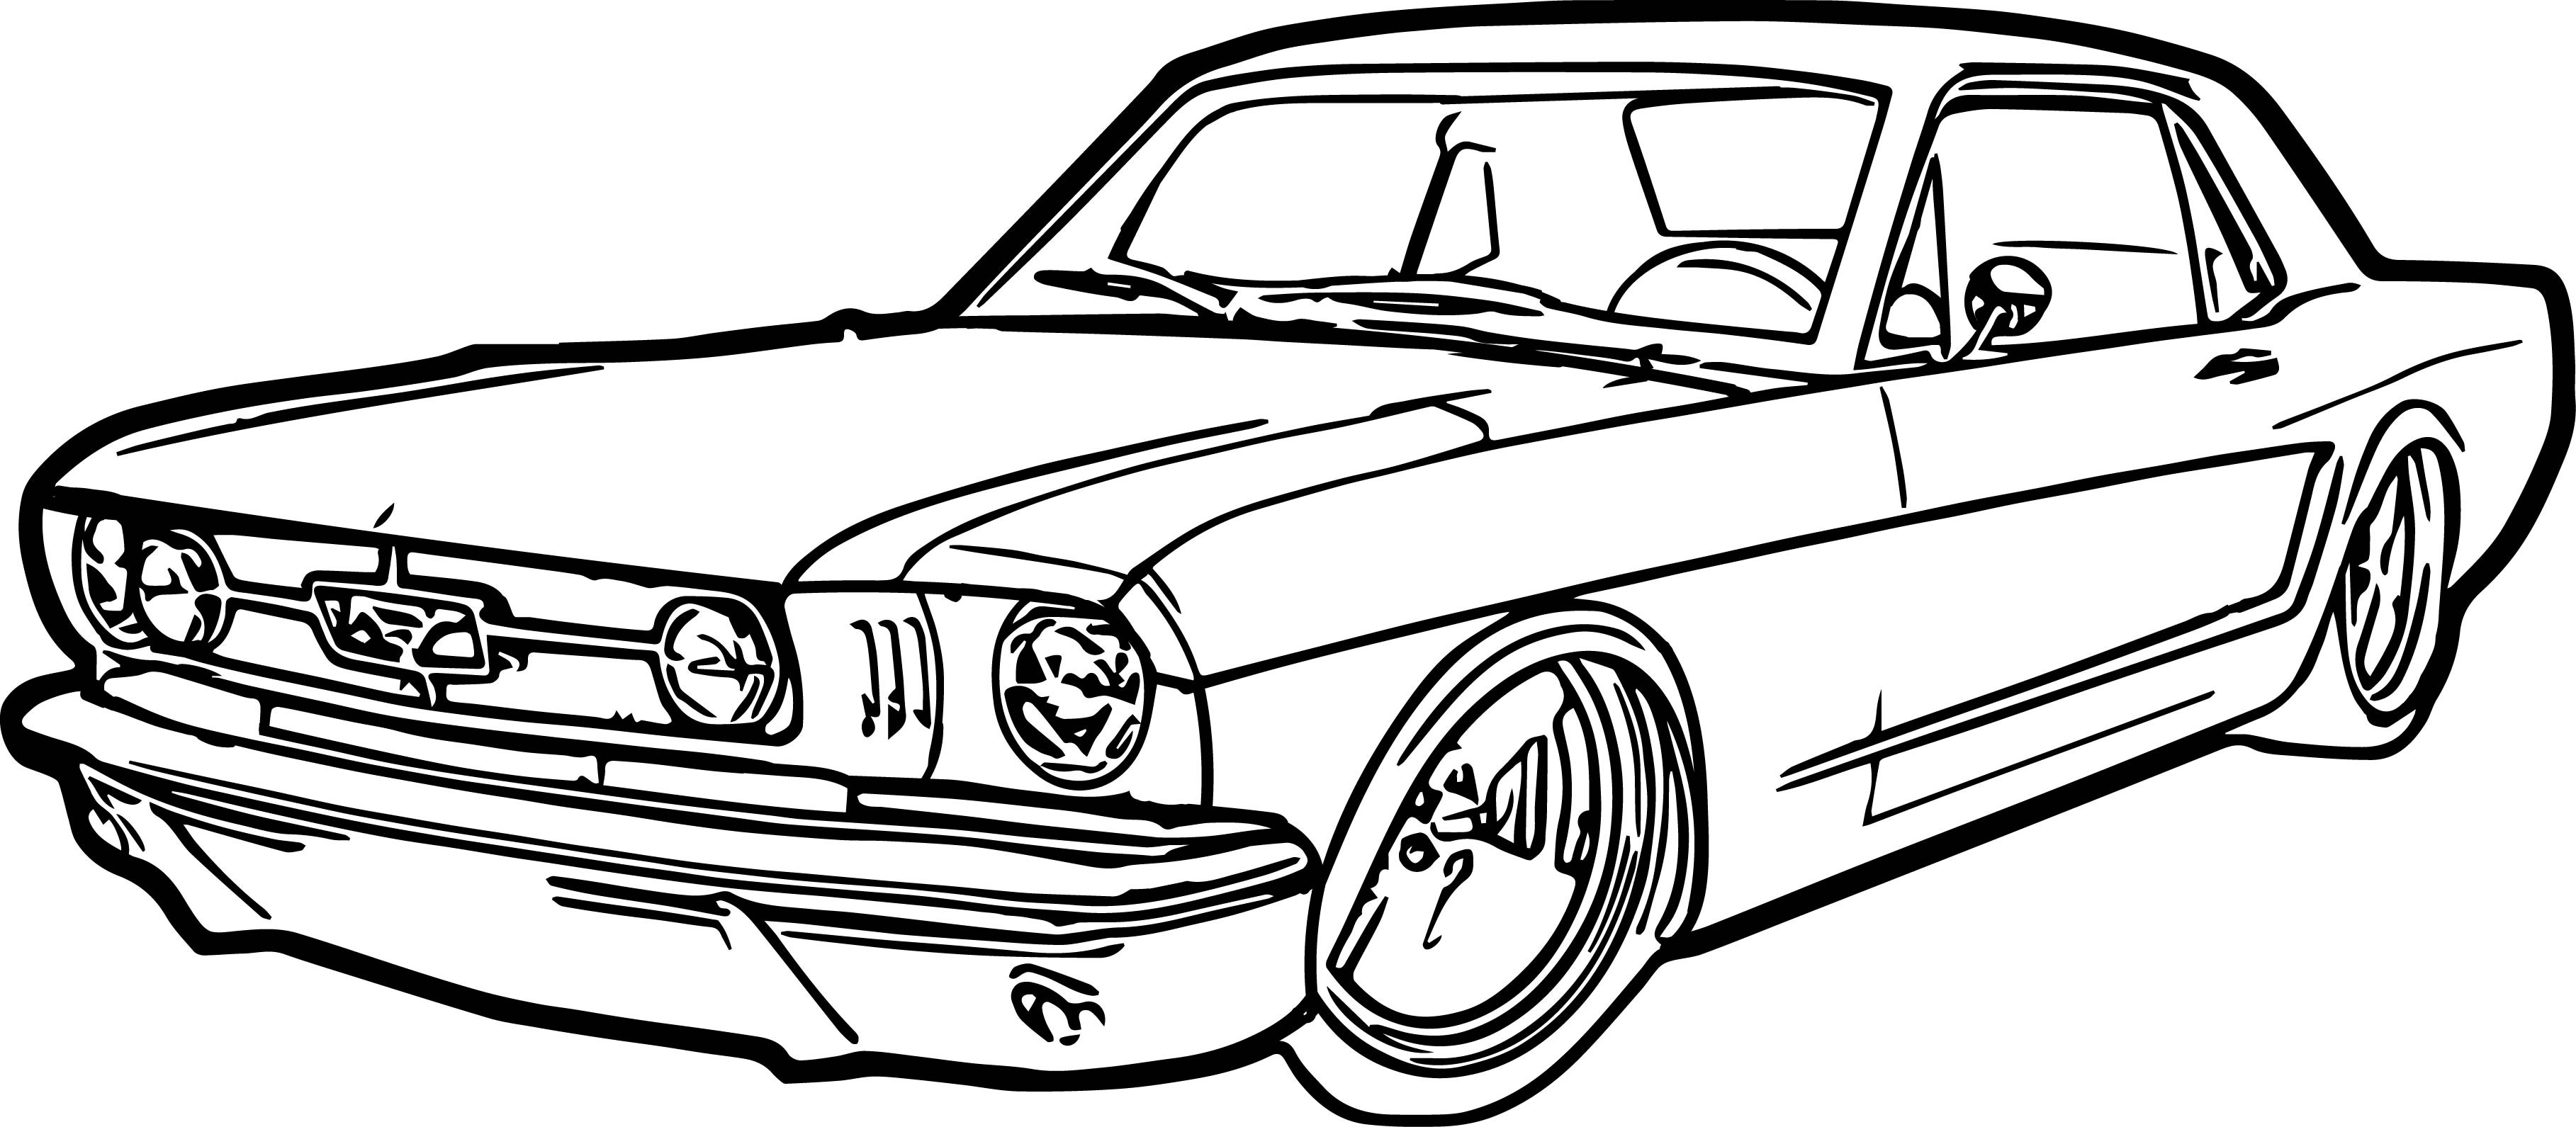 Hot Rod Coloring Pages to Print Download | Free Coloring Sheets